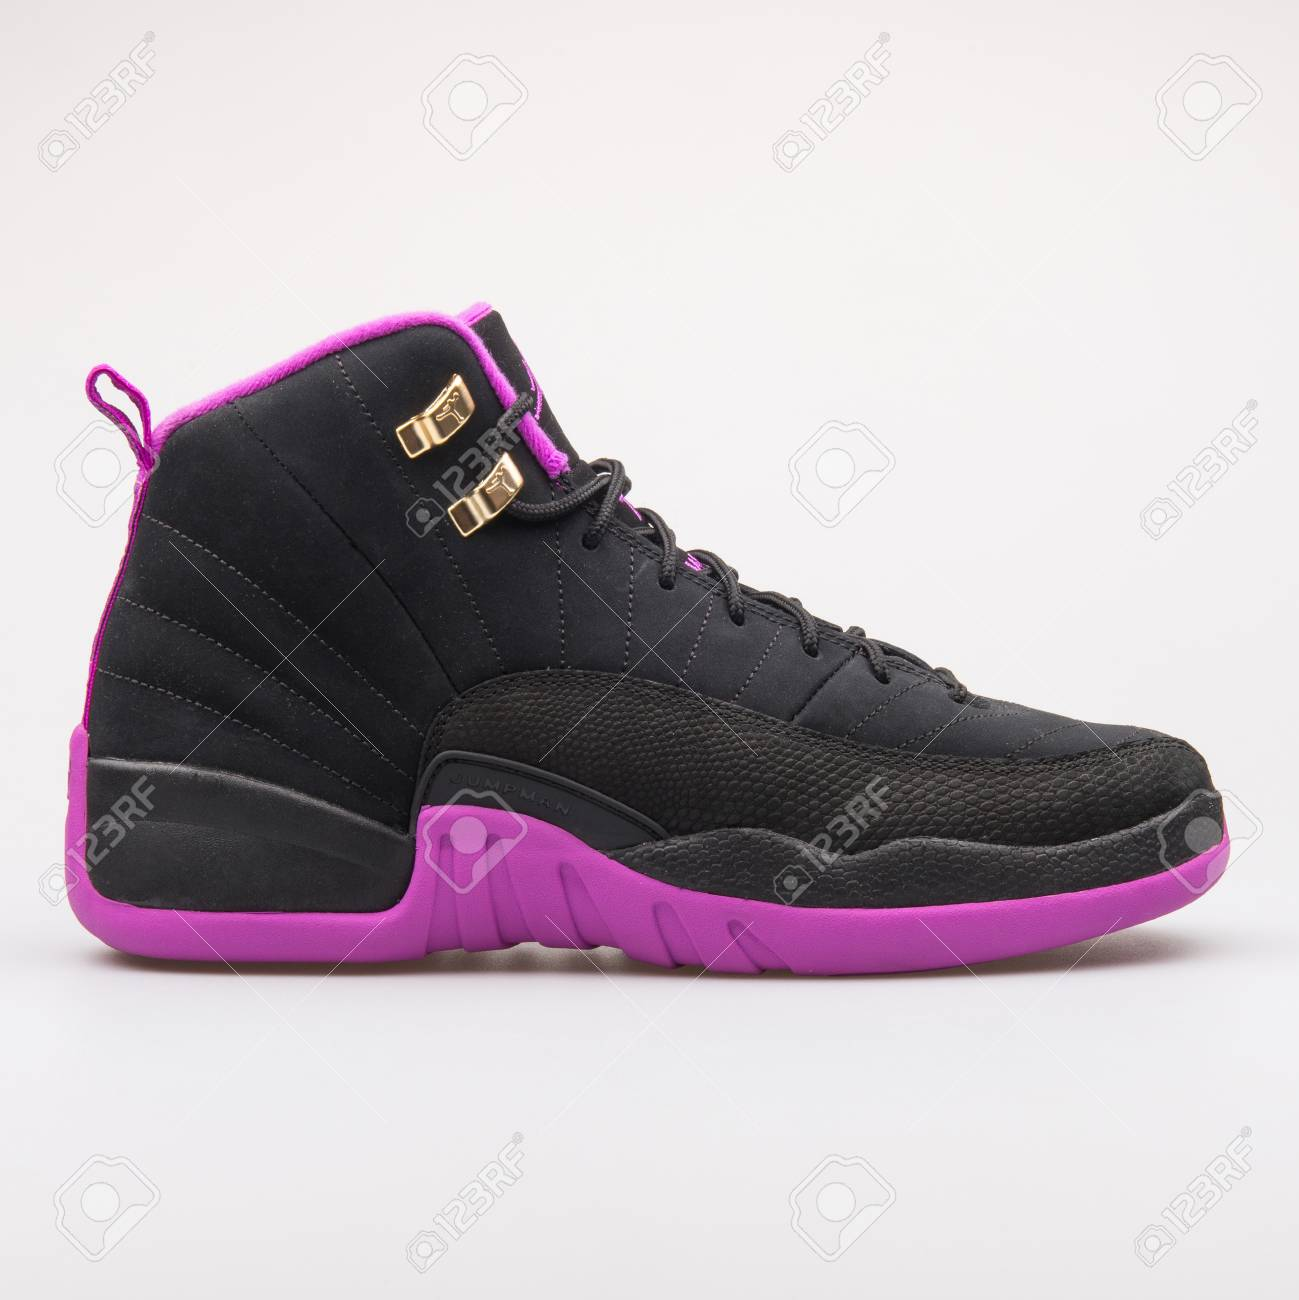 huge discount a5127 722f0 Stock Photo - VIENNA, AUSTRIA - JUNE 14, 2017  Nike Air Jordan 12 Retro OG  black and violet sneaker isolated on grey background